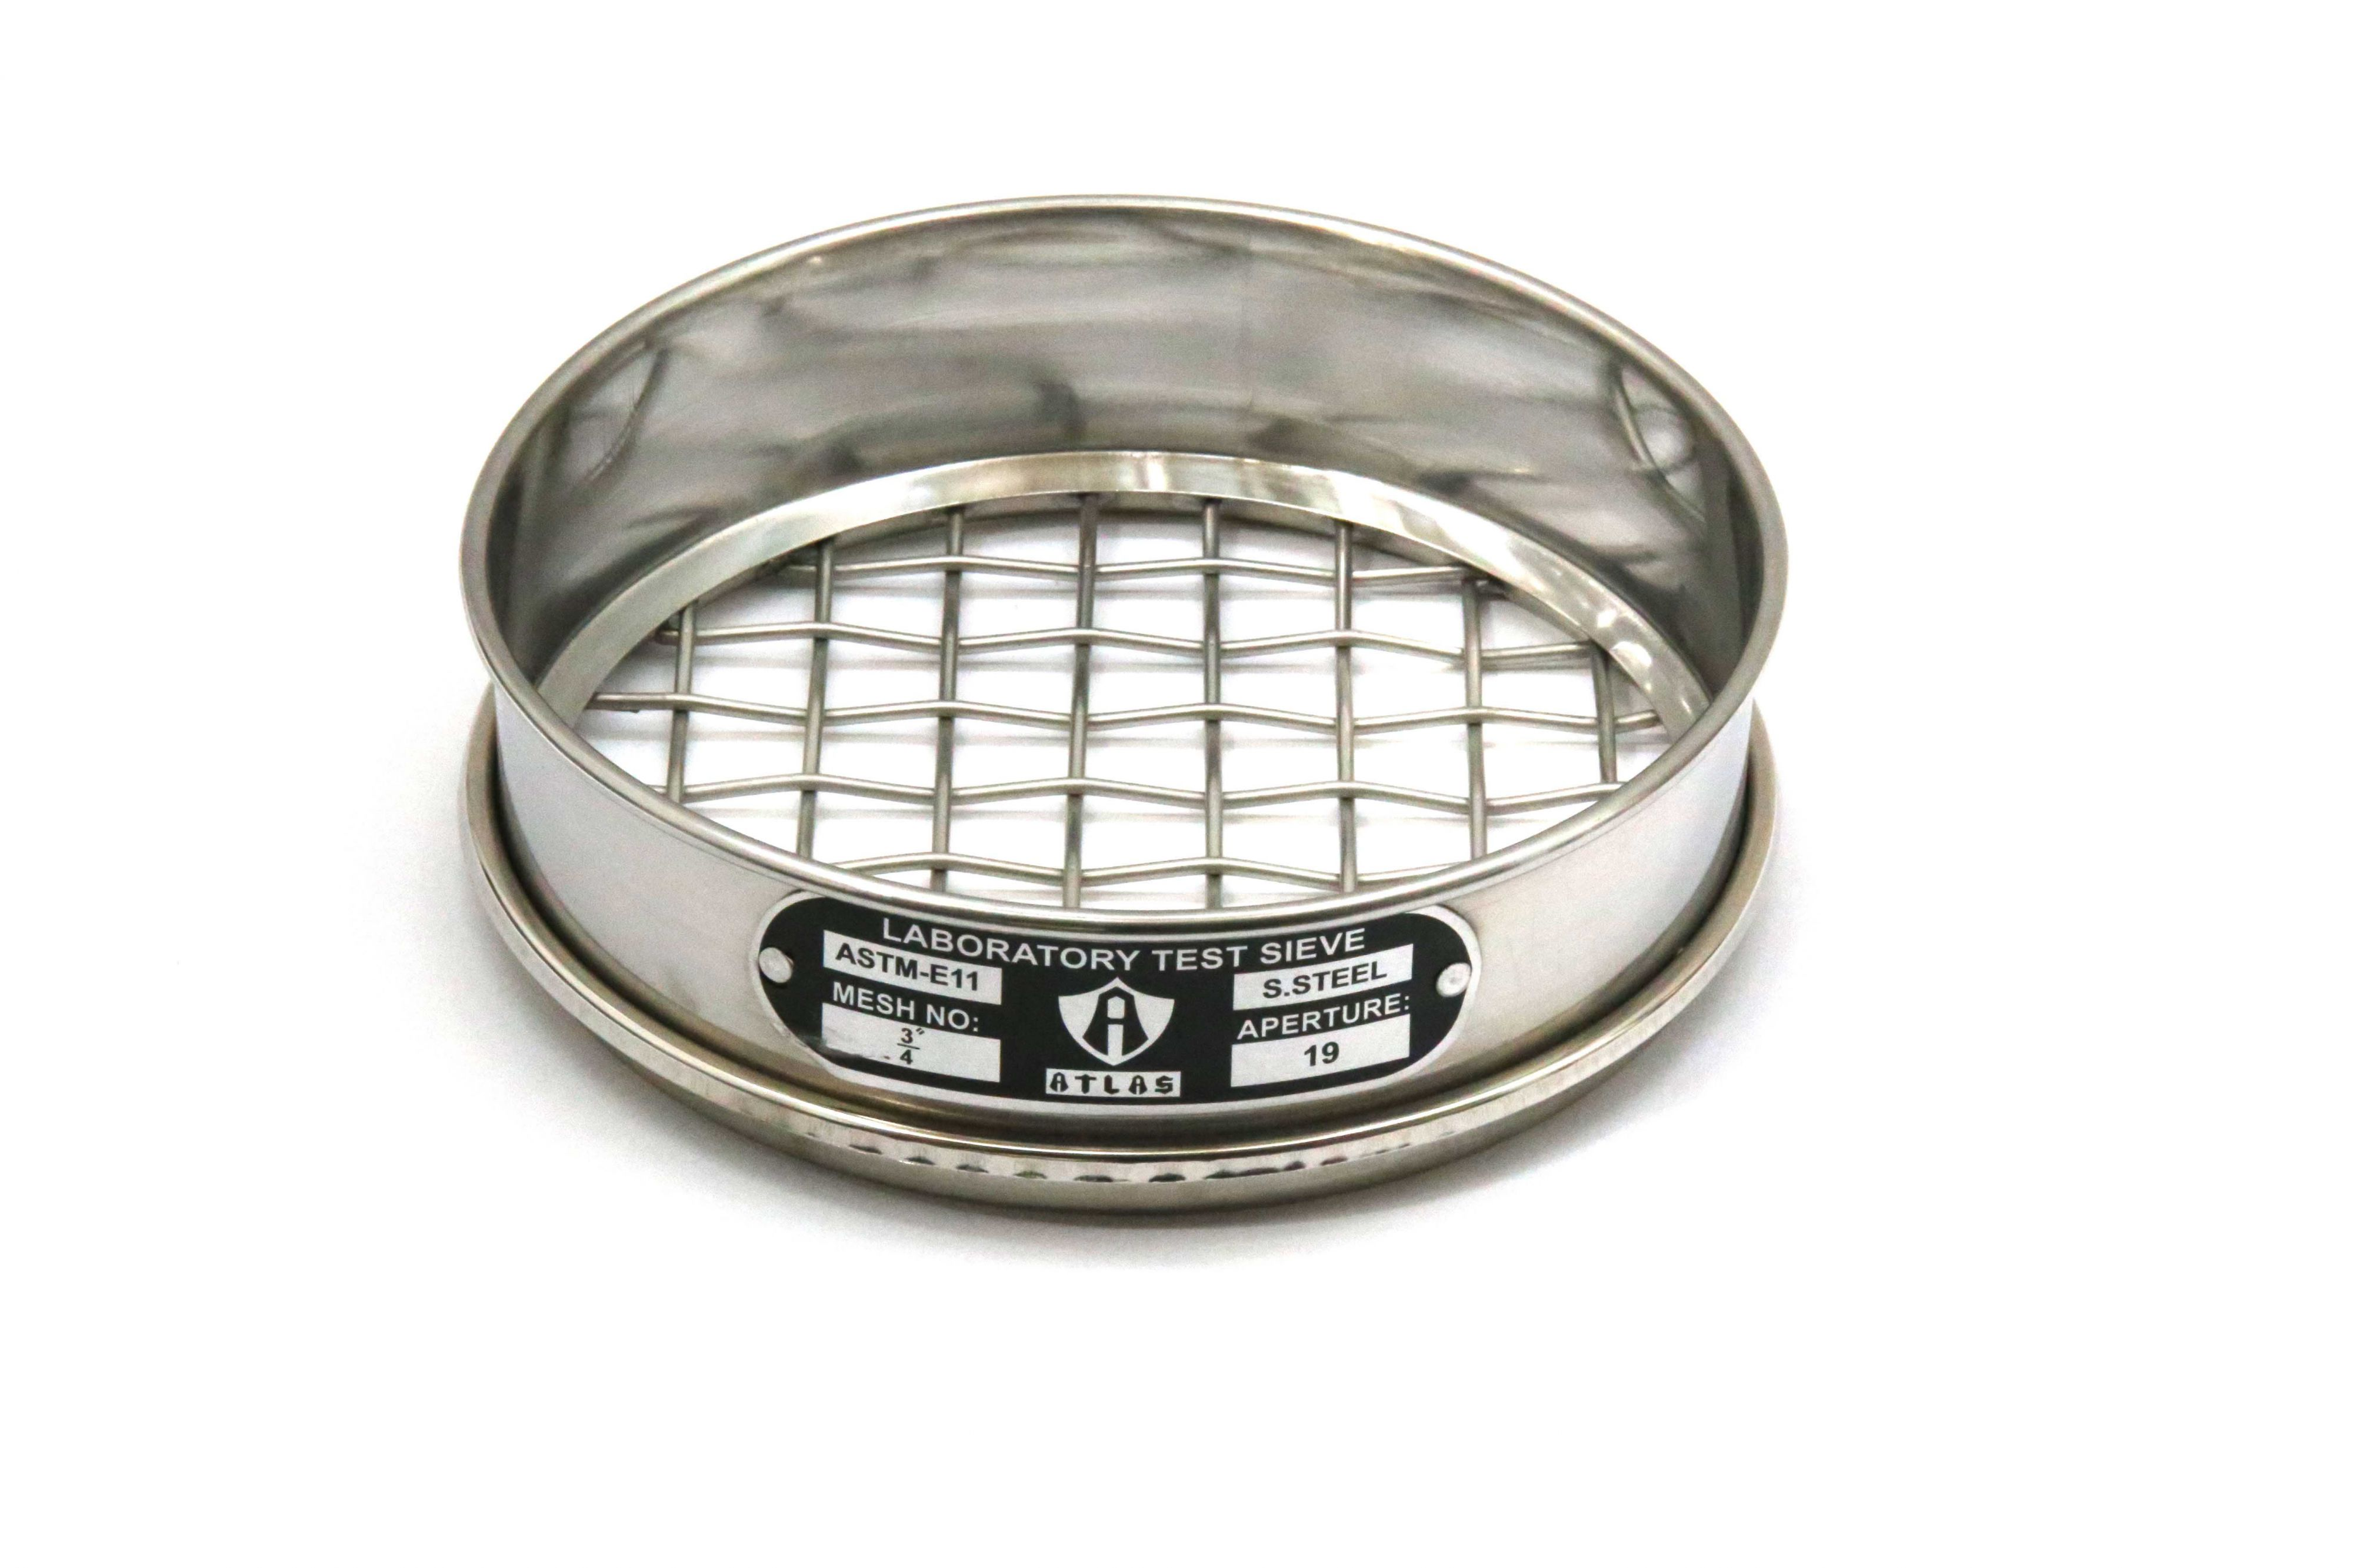 Laboratory sieve in sizes 8 and 12 inches